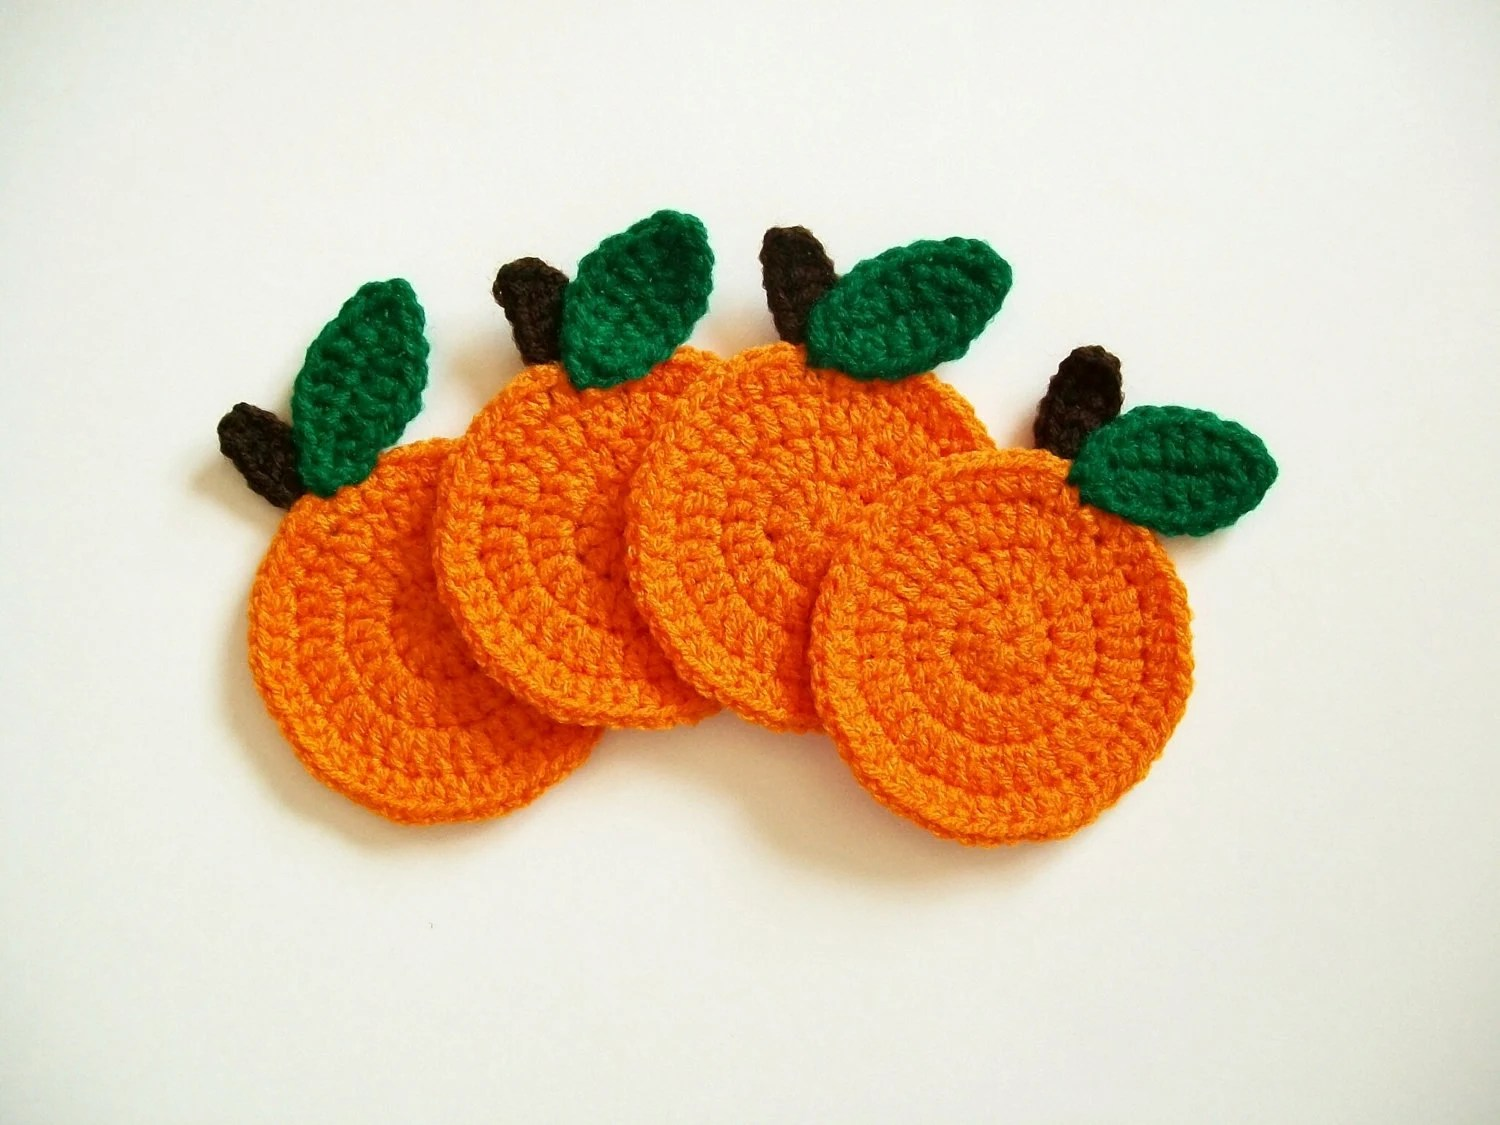 Crochet Orange Fruit Coasters Housewarming Gift Handmade Set of 4 - littledarlynns